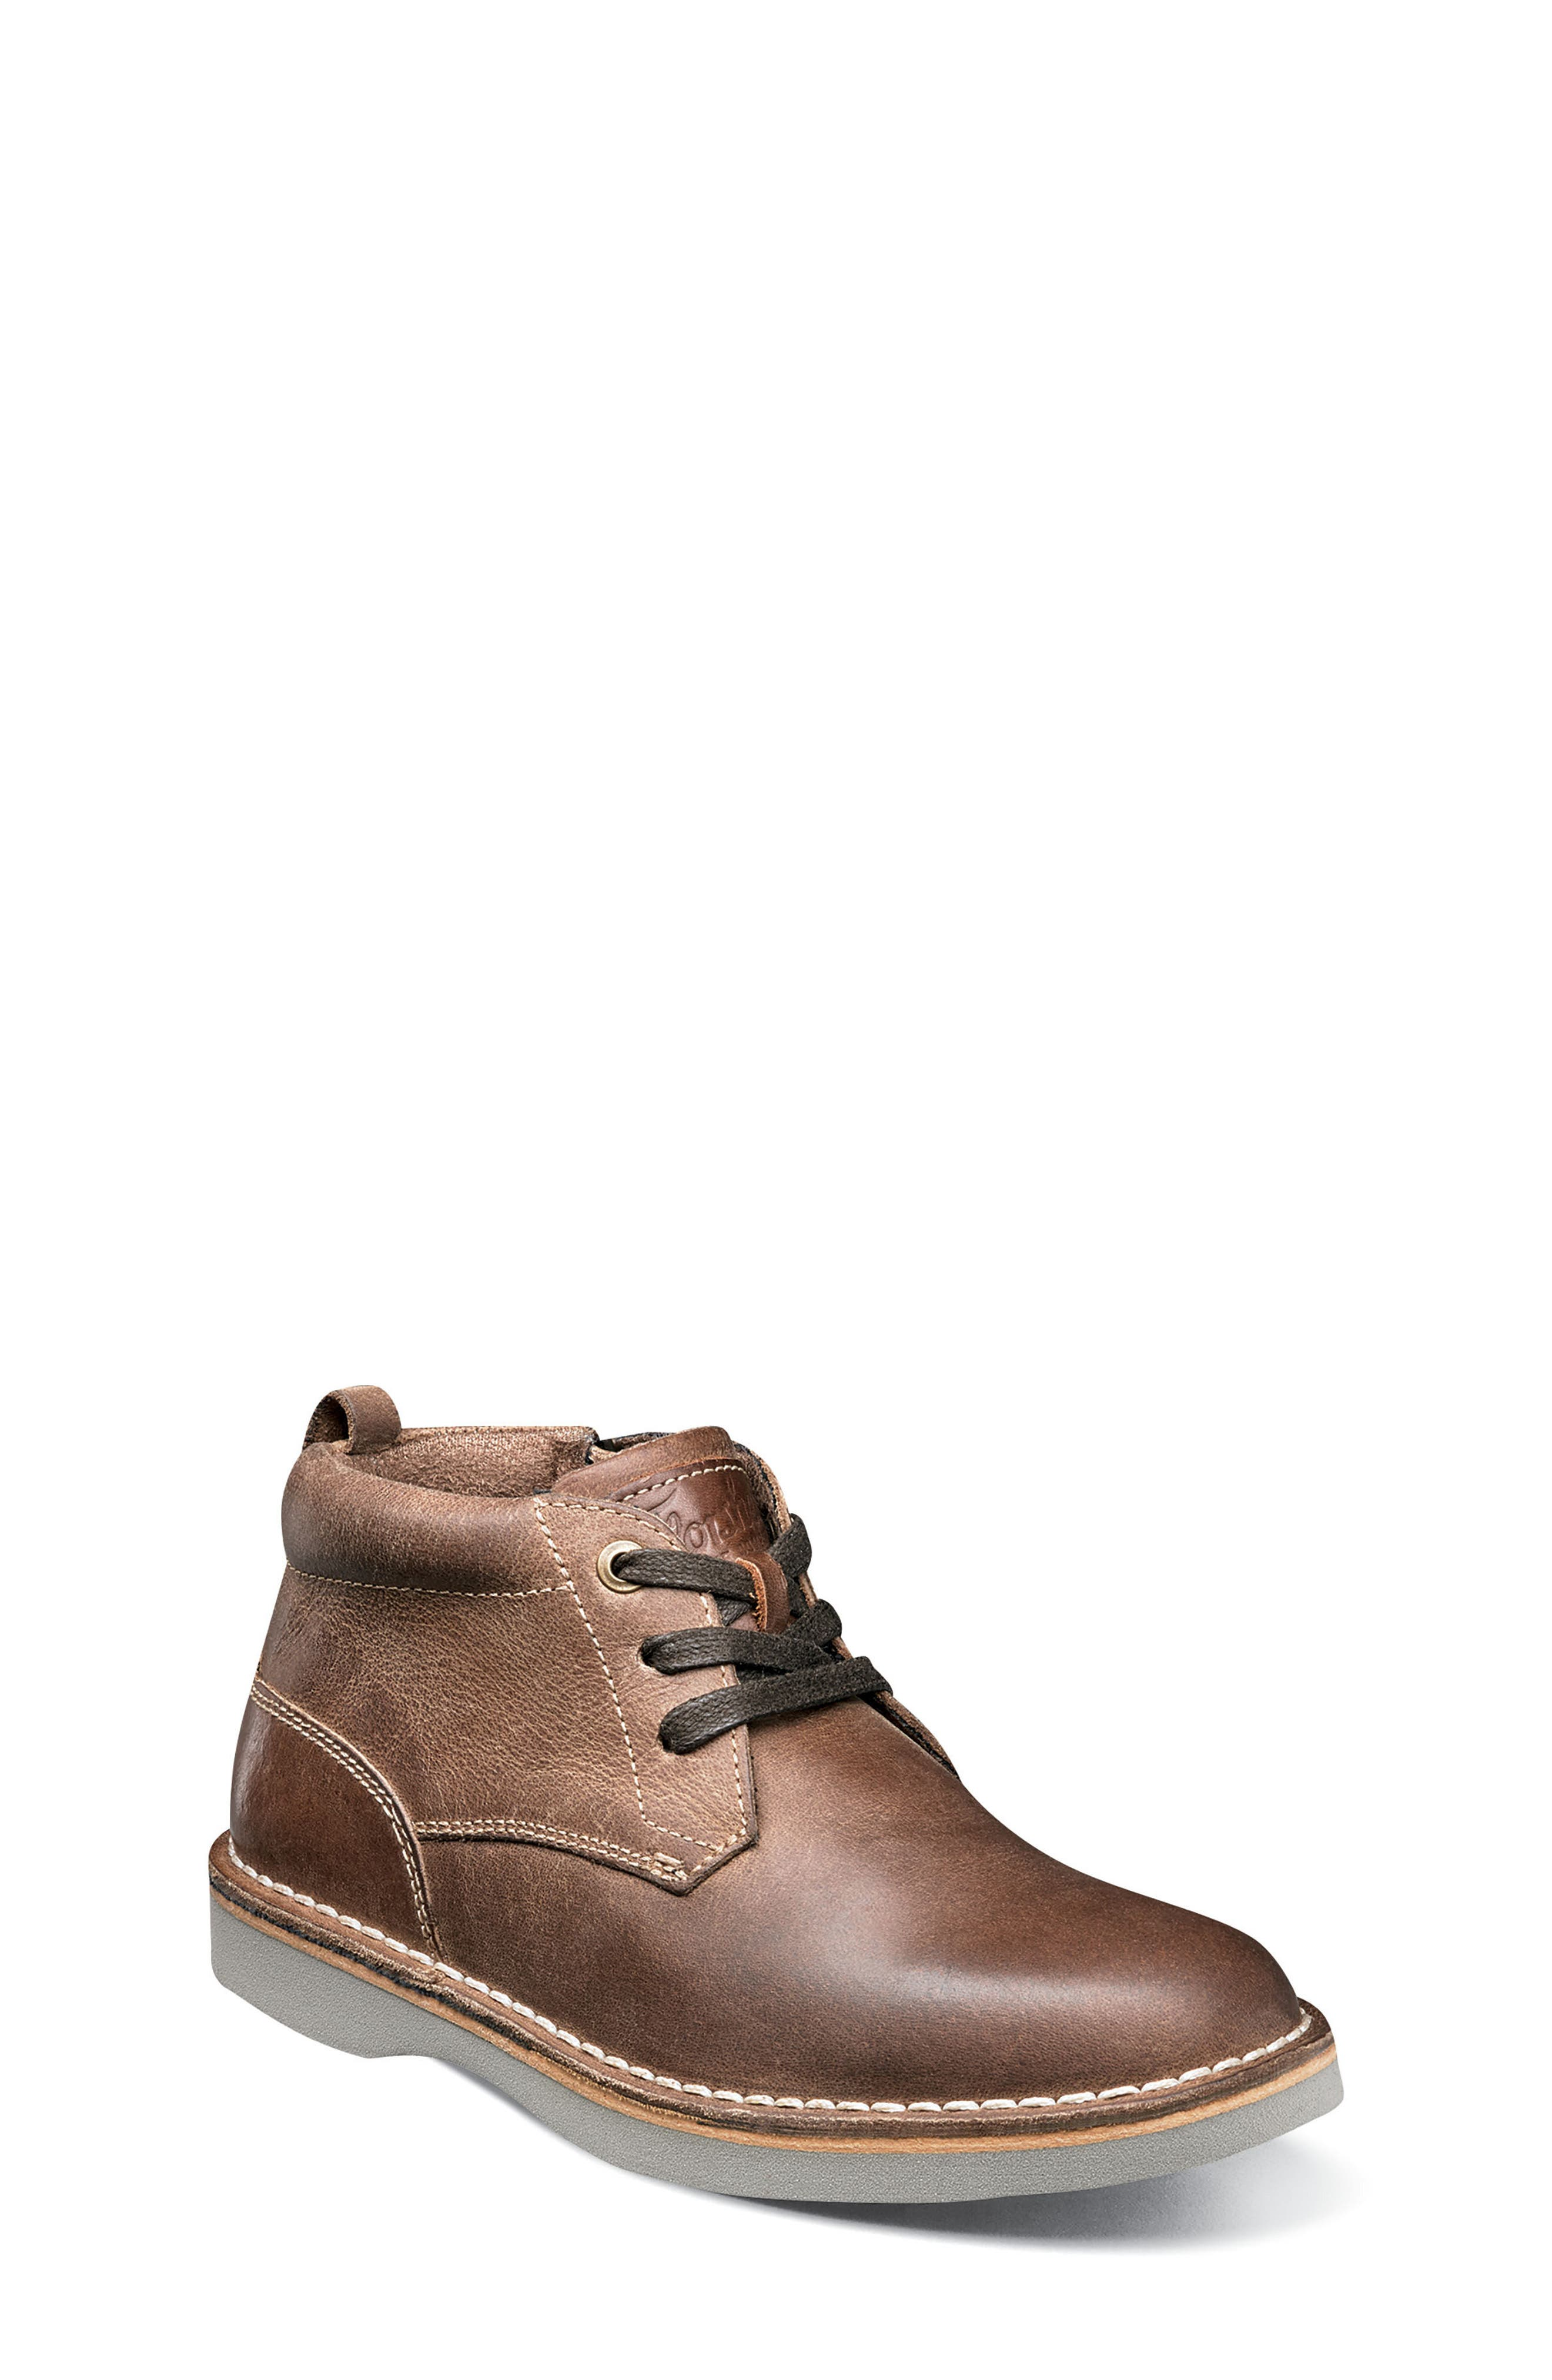 Chukka Boot,                             Main thumbnail 1, color,                             BROWN CRAZY HORSE LEATHER